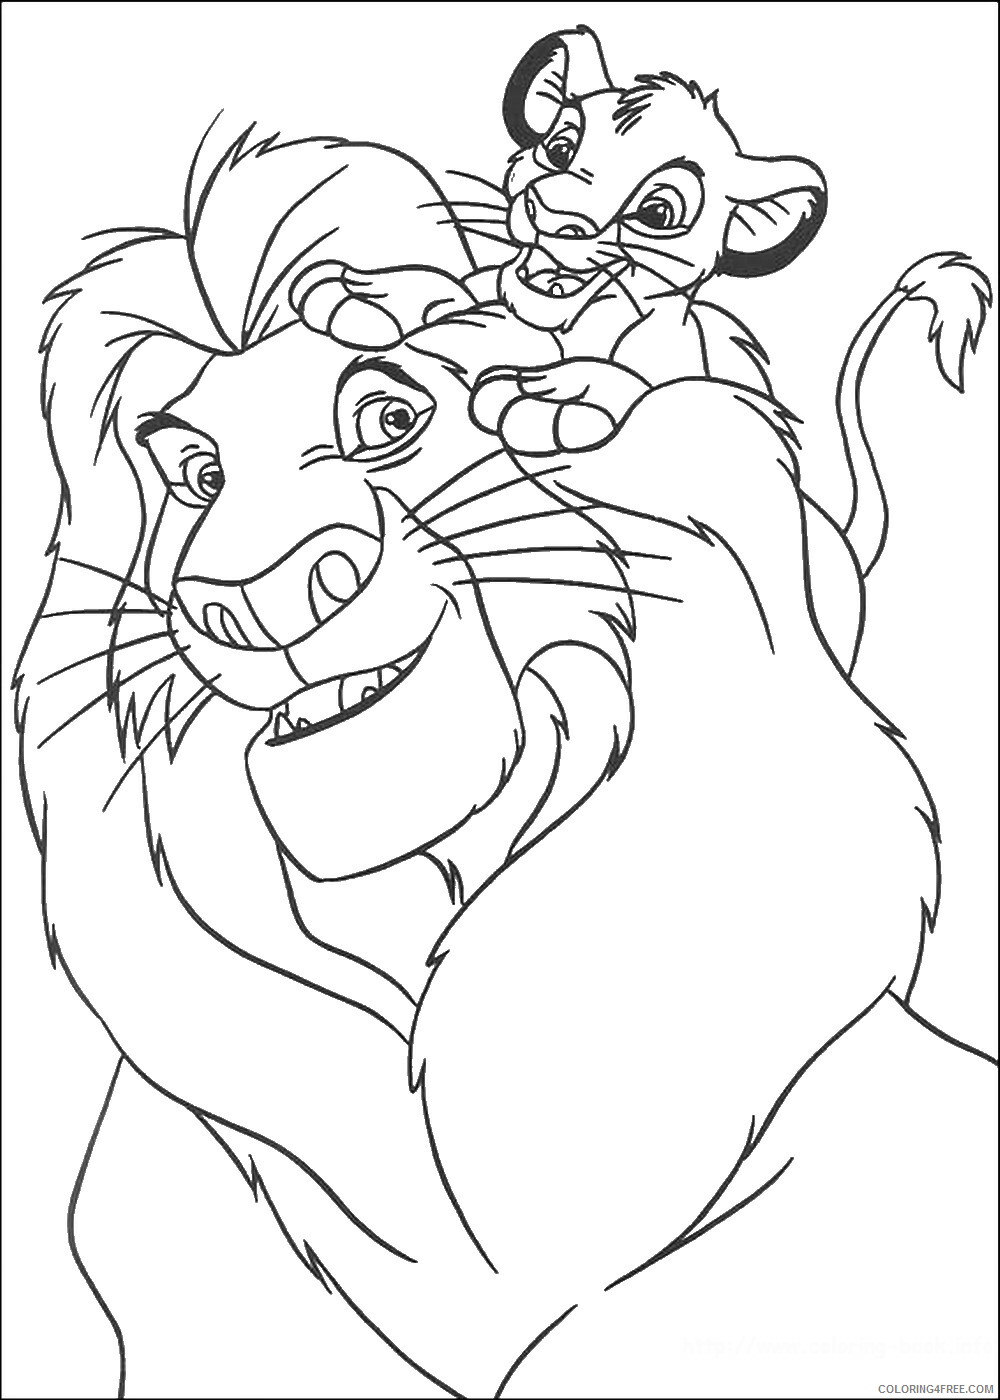 The Lion King Coloring Pages TV Film lionking_26 Printable 2020 09155 Coloring4free